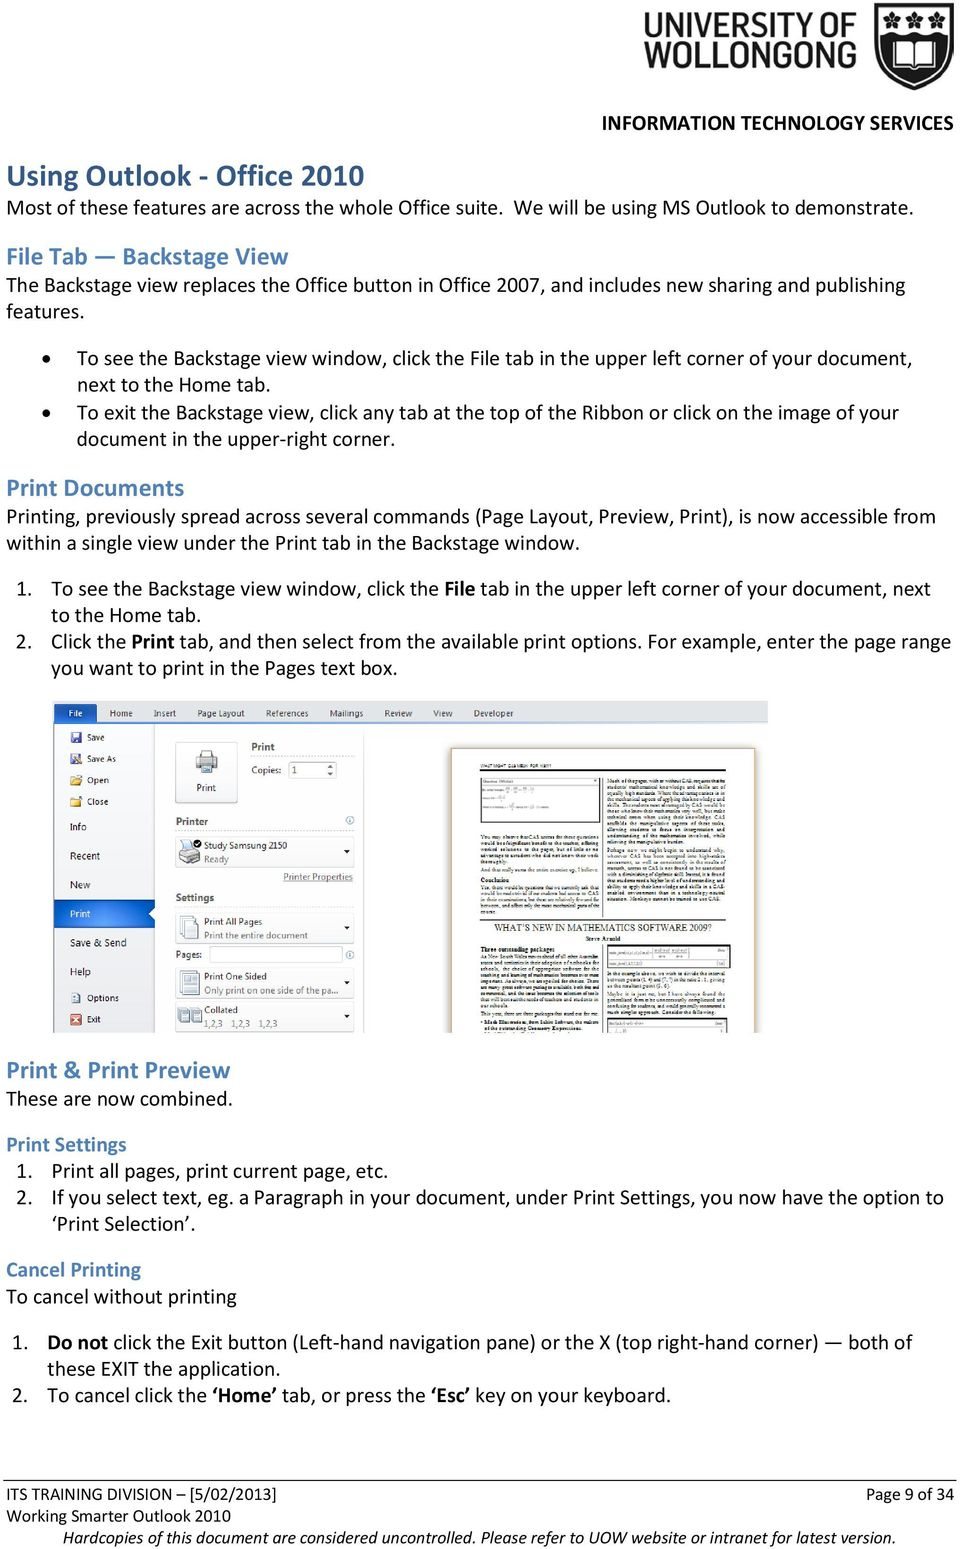 To see the Backstage view window, click the File tab in the upper left corner of your document, next to the Home tab.